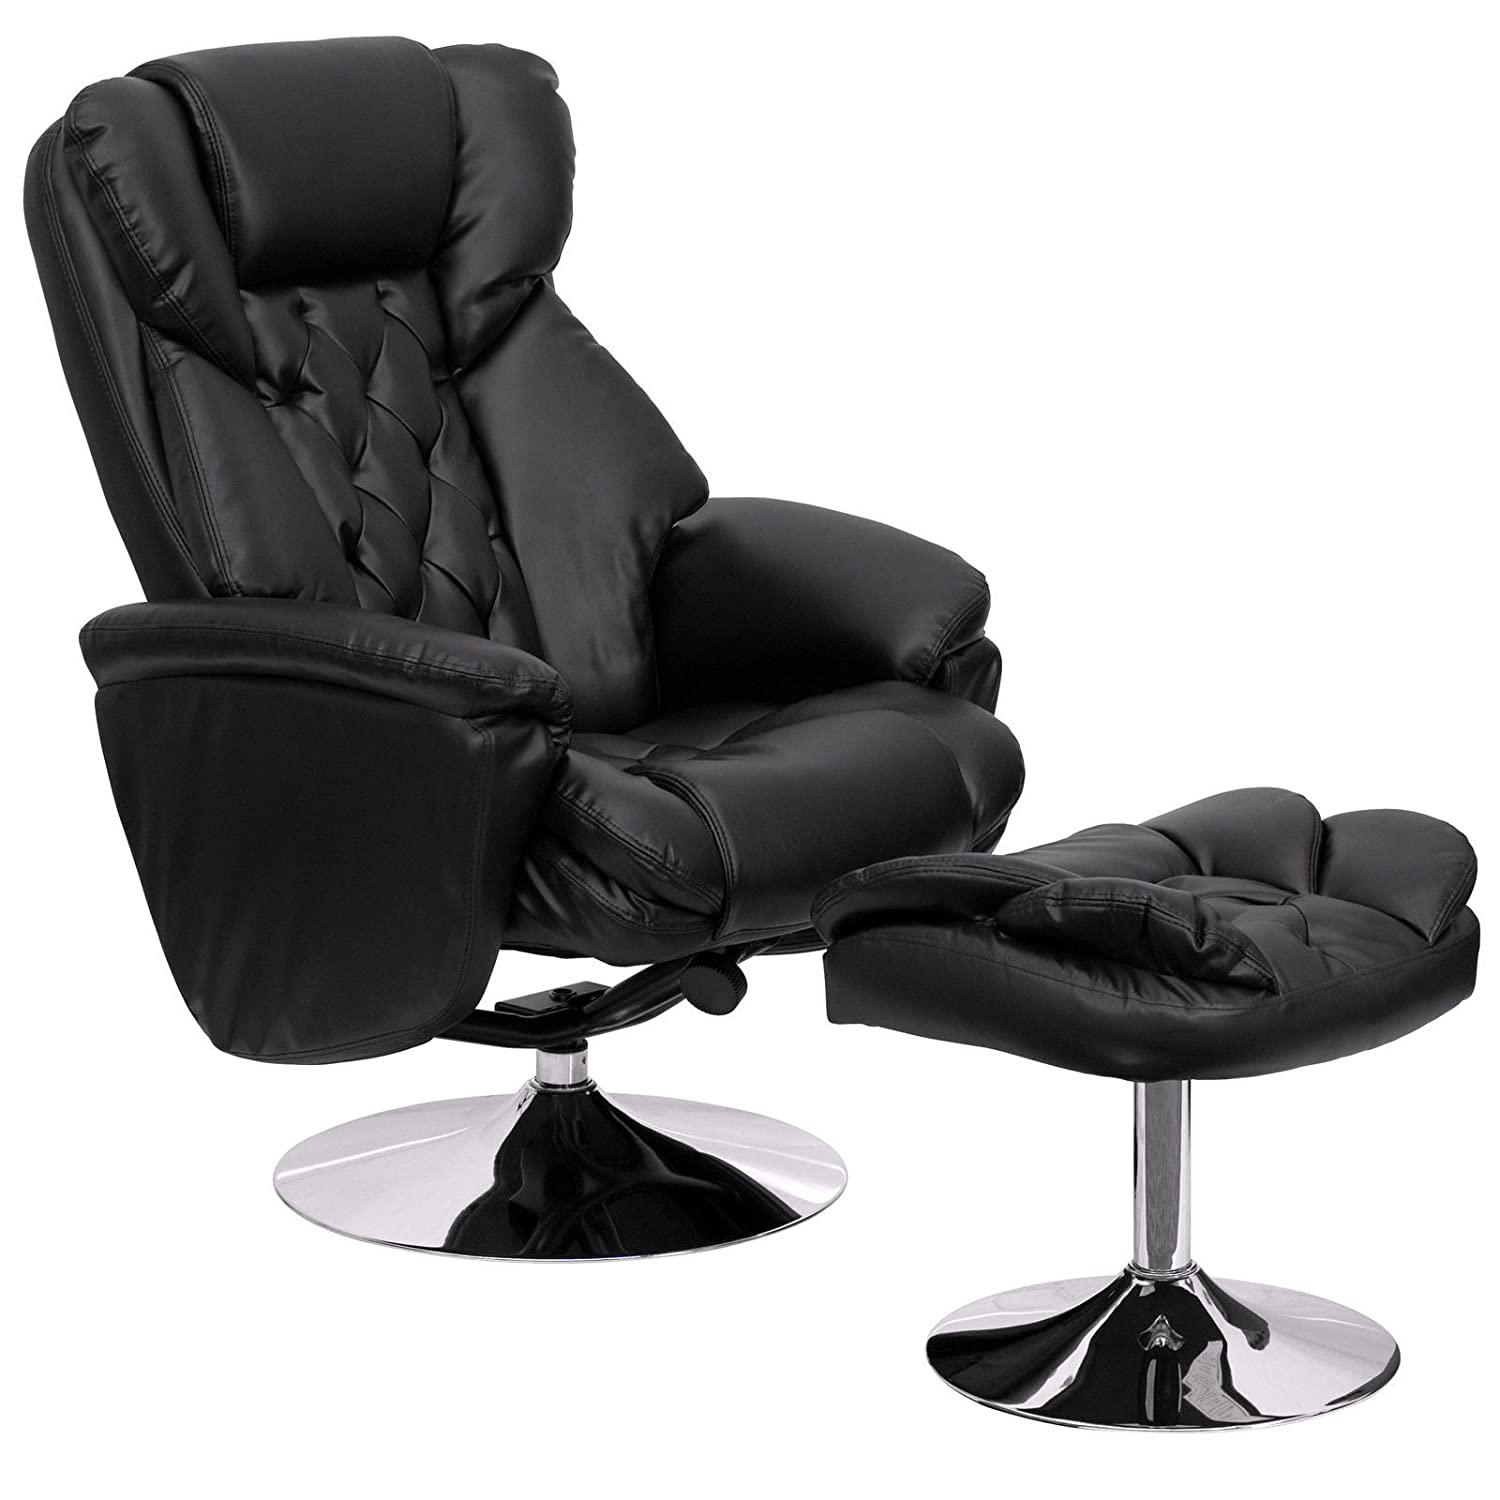 Most comfortable office chair - Details